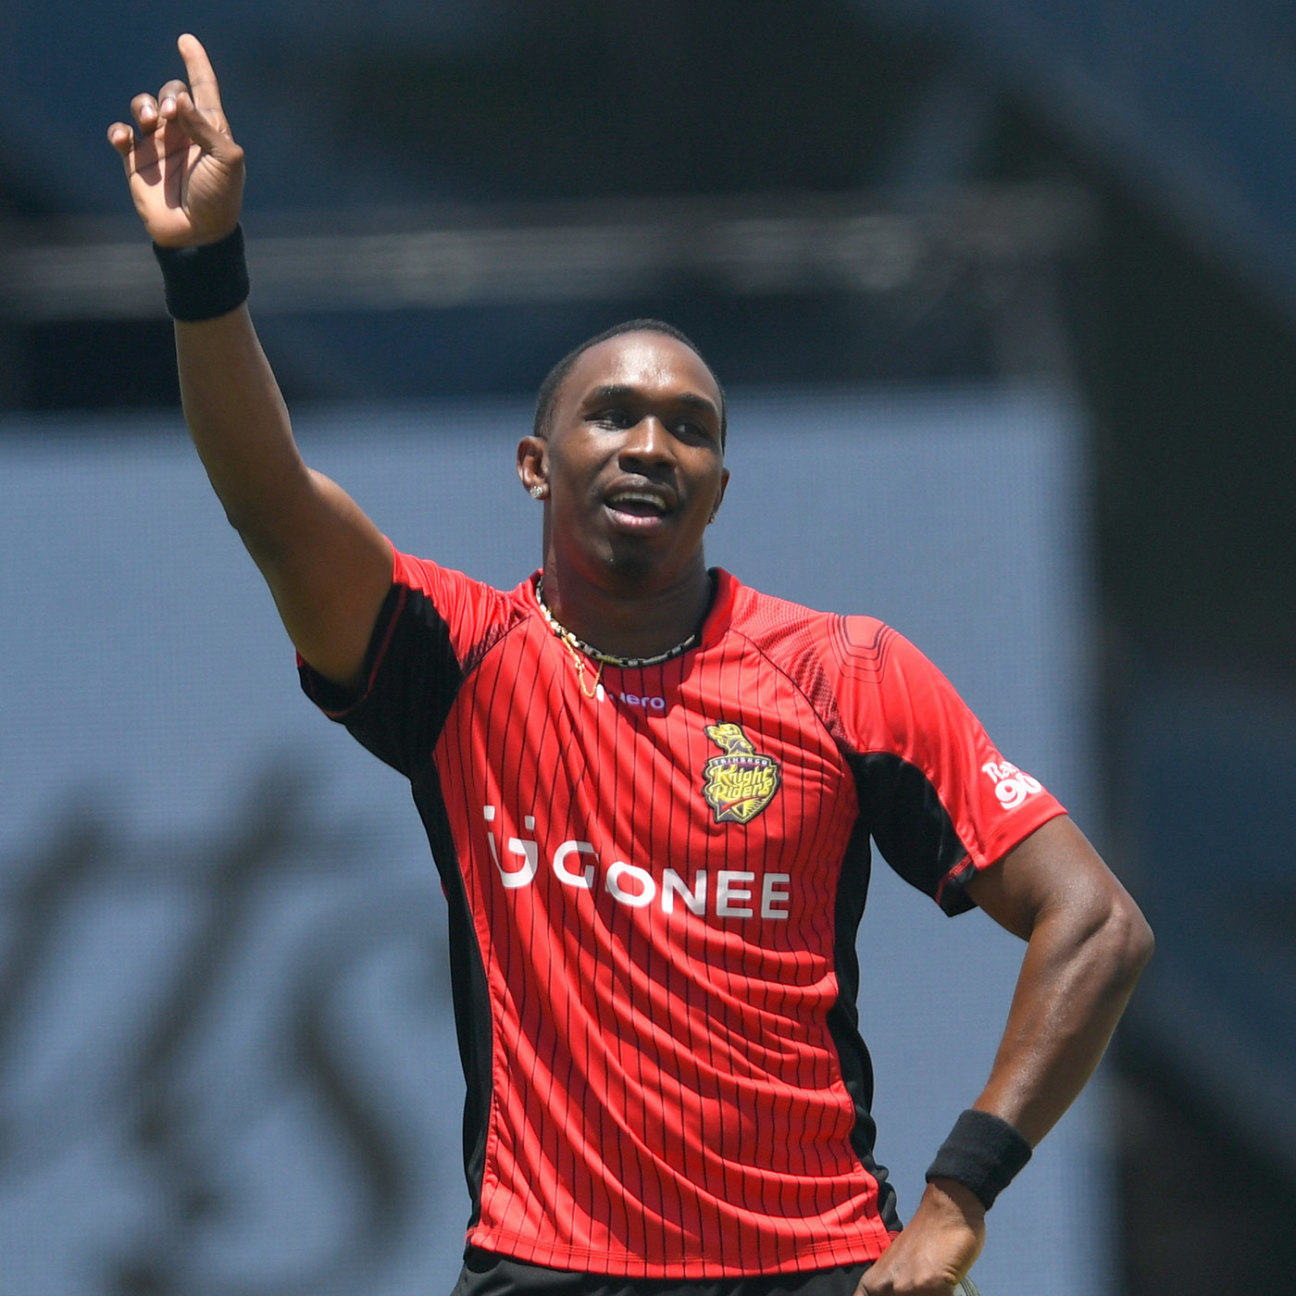 Dwayne Bravo gets the Florida crowd doing the